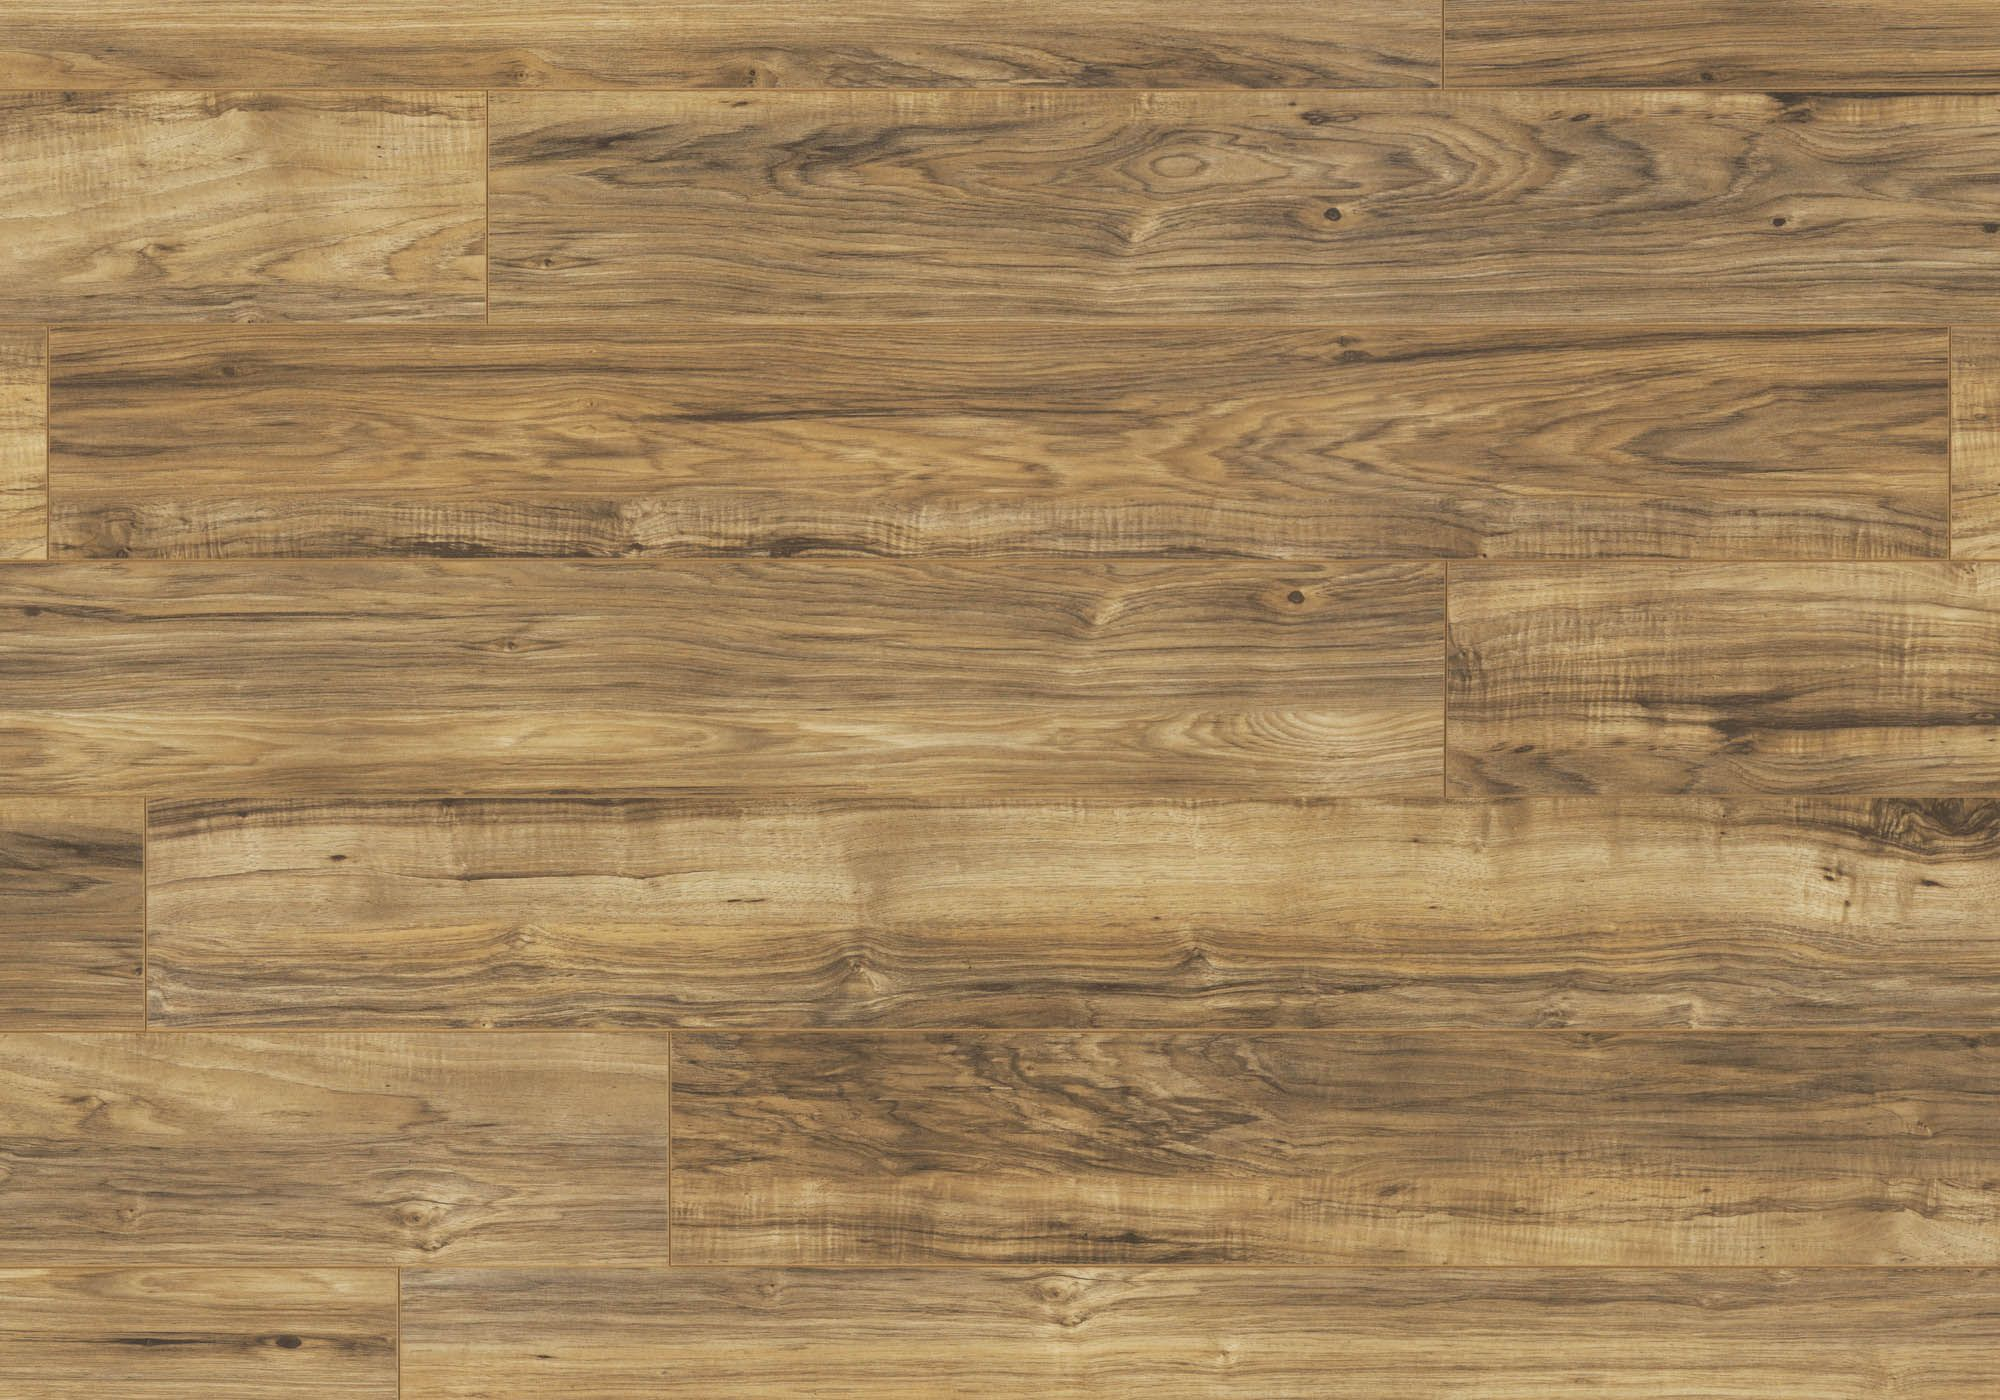 Rustic Pecan A Beautiful Rustic Floor With Rich Variations And